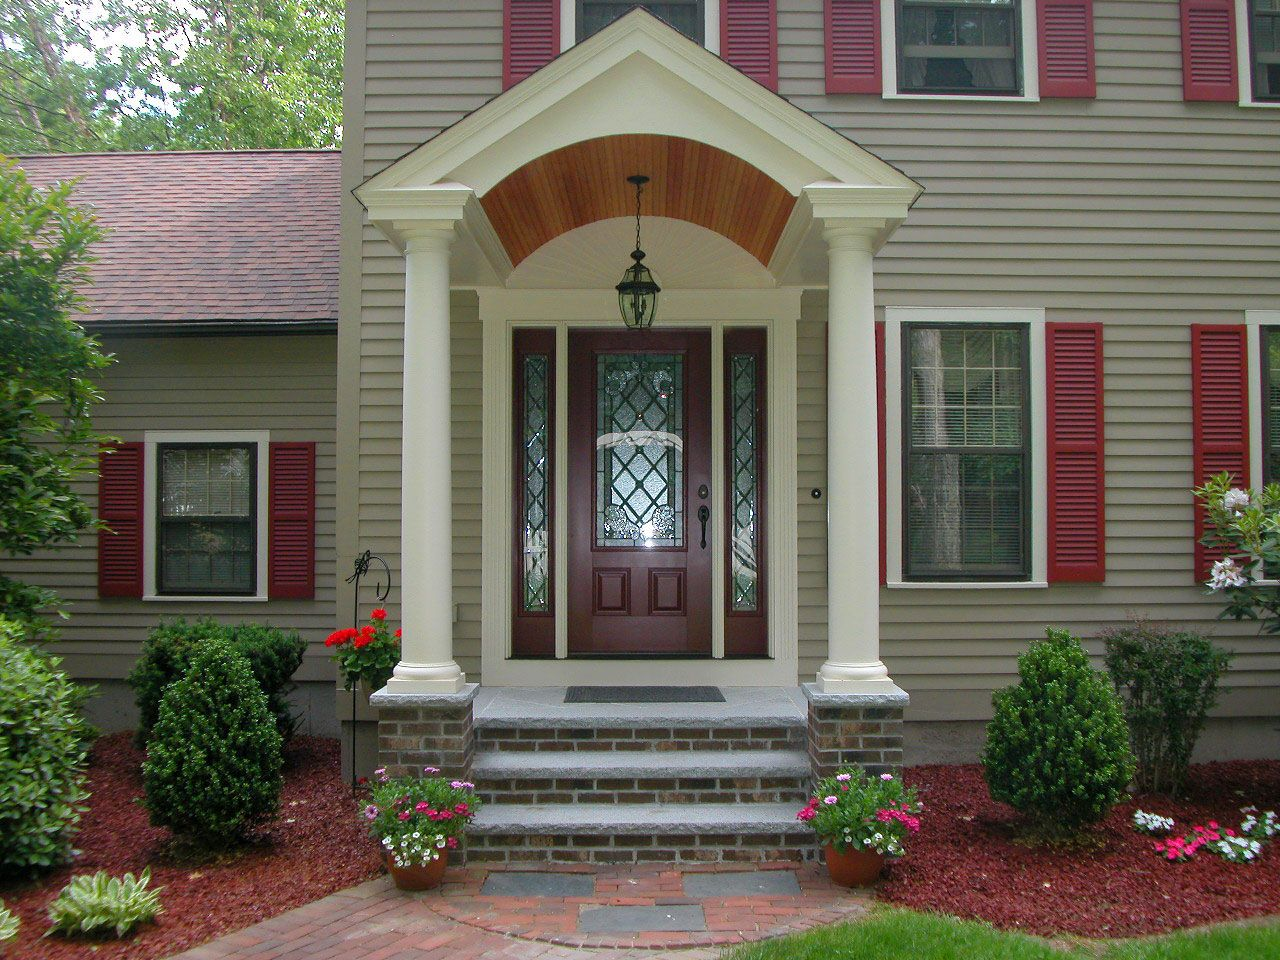 Awesome Front Home Entrance Ideas Ideas ~ duckdo | Outdoors ... on house door design, house courtyard design, house family room design, home entrance design, basement entrance design, house car park design, house study design, house driveway design, living room entrance design, house parking design, dining room entrance design, foyer entrance design, house stairway design, kitchen entrance design, house deck design, office entrance design, patio entrance design, house hall design, house playground design, house sitting area design,